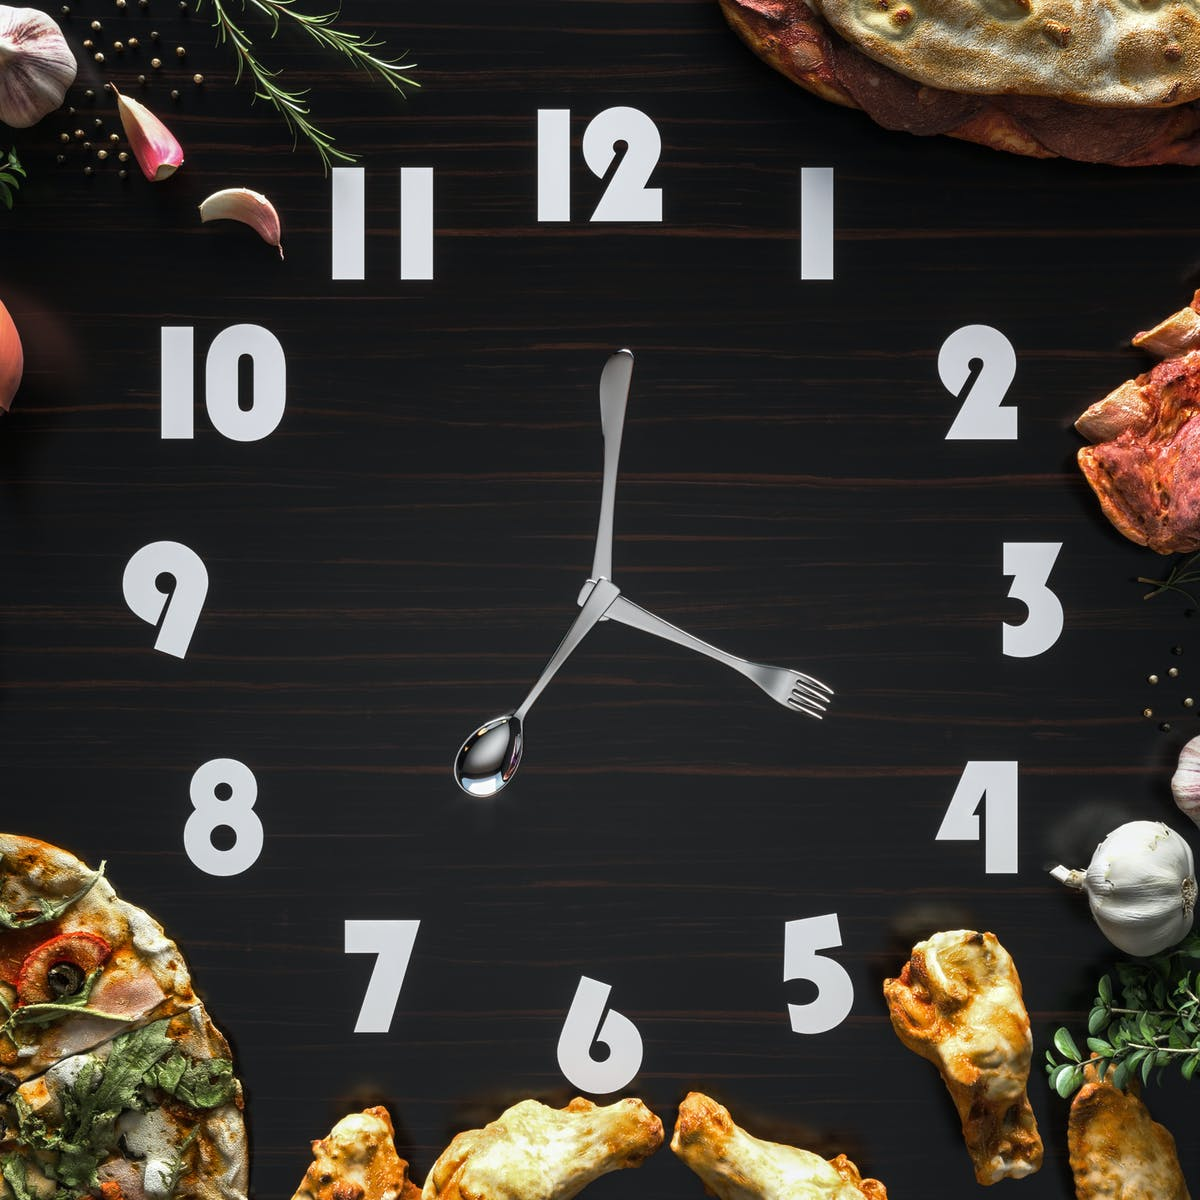 Time-restricted eating can overcome the bad effects of